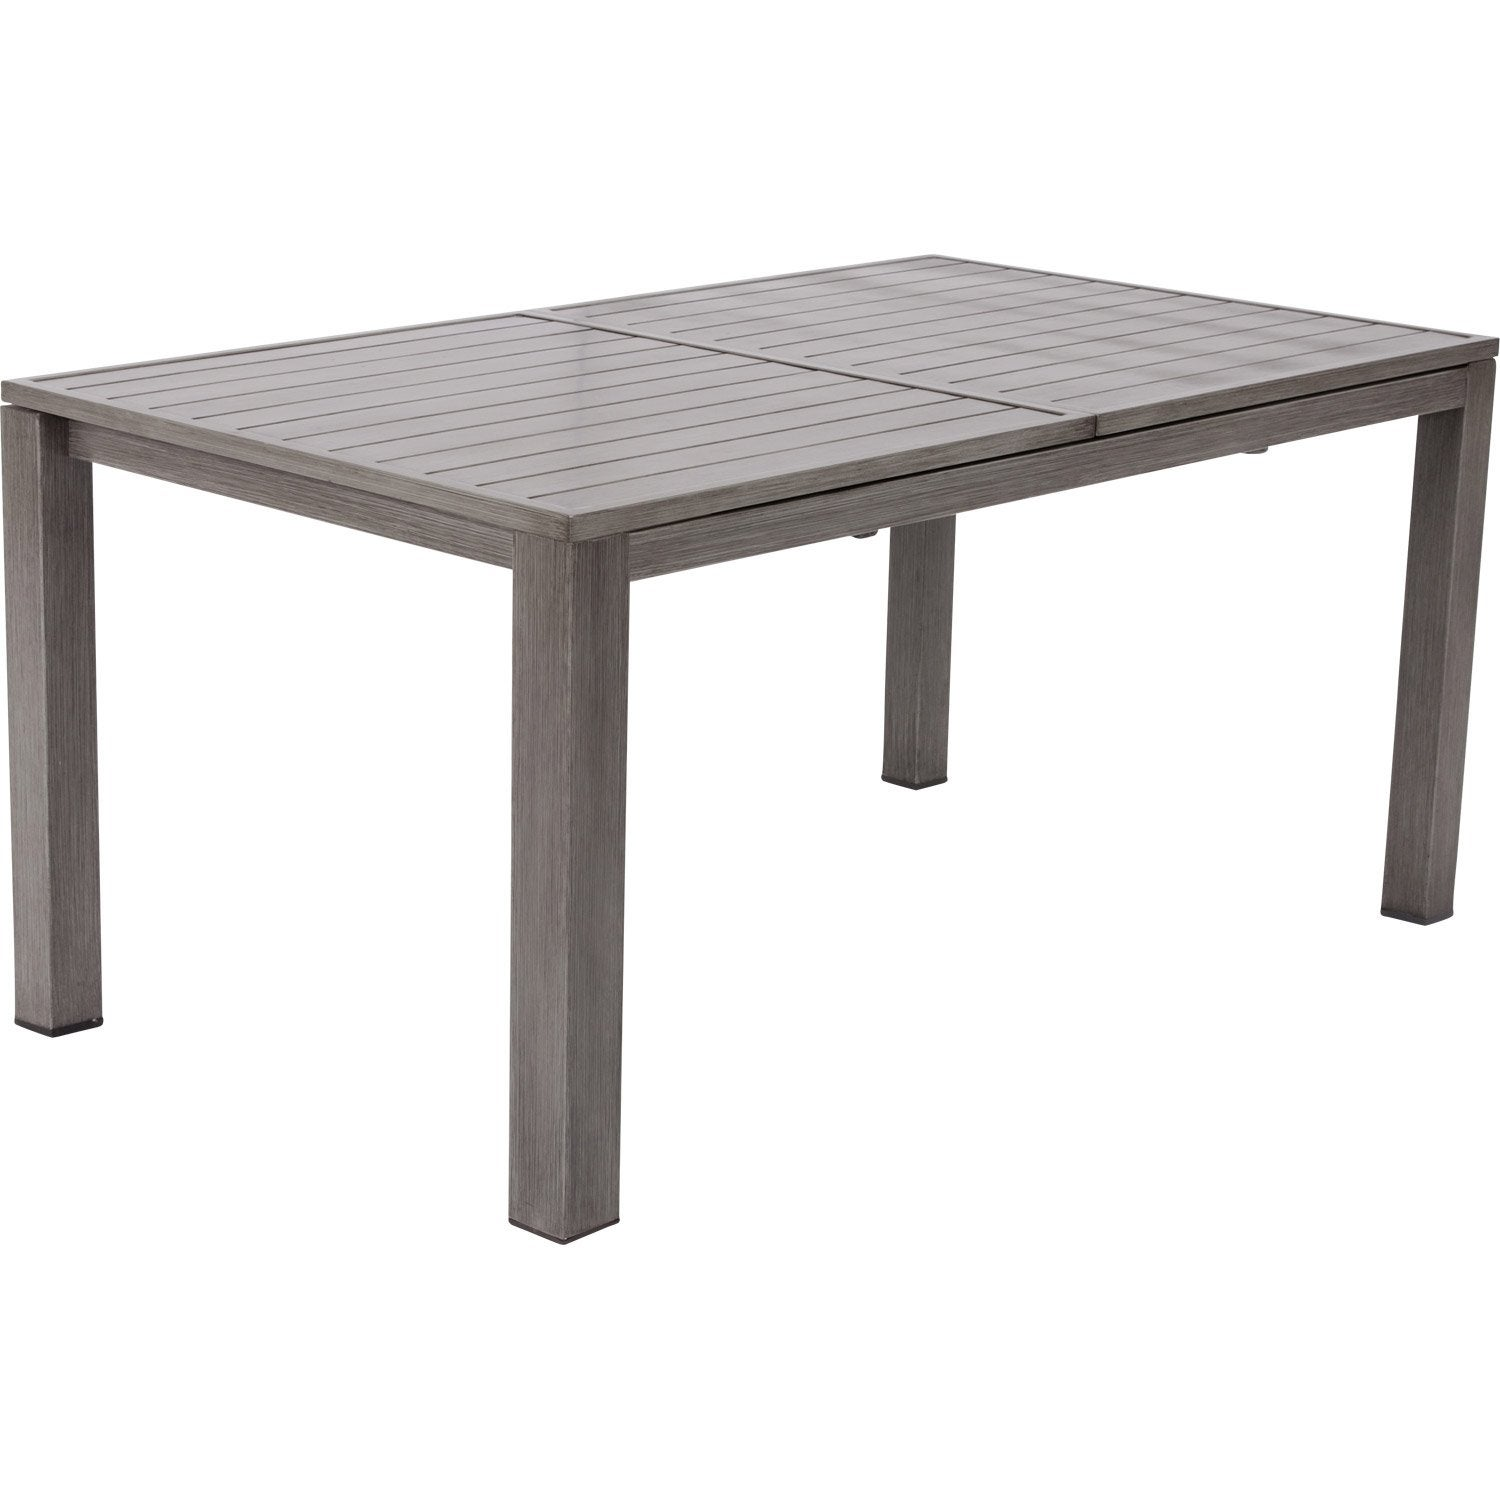 Table de jardin naterial antibes rectangulaire gris look for Table exterieur tridome